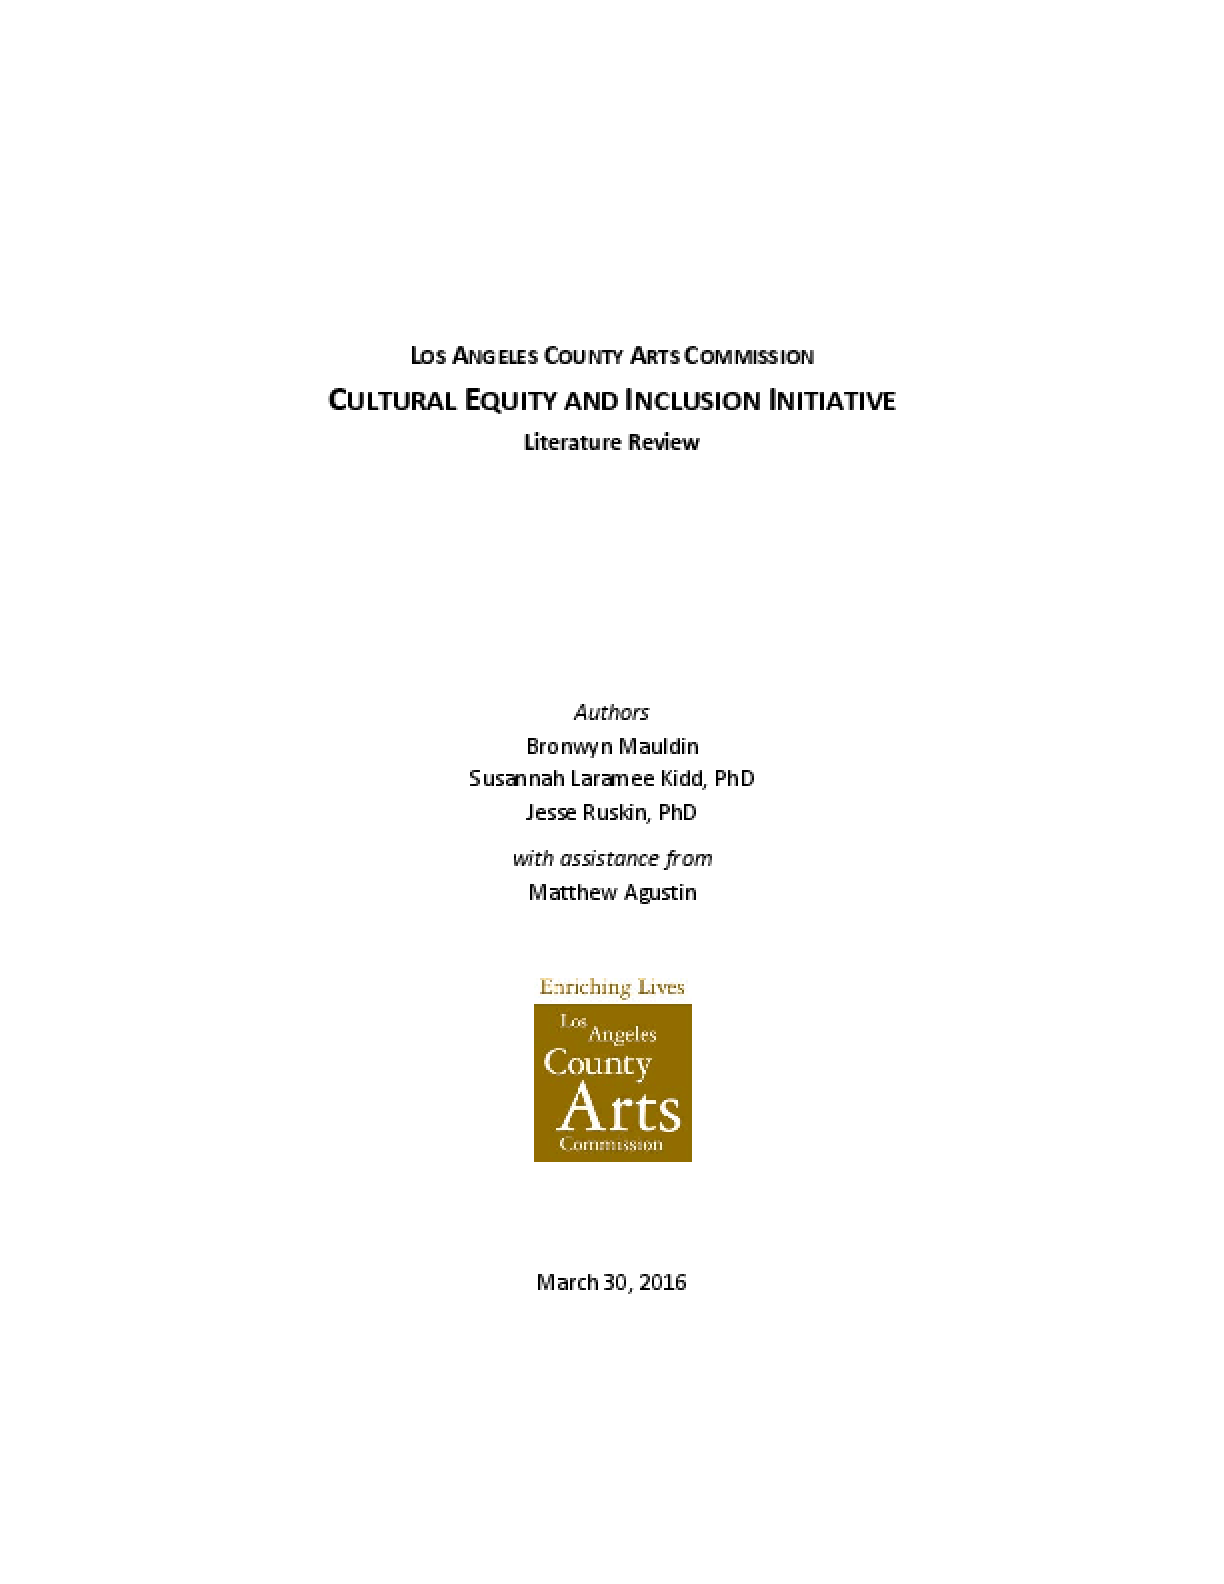 Cultural Equity and Inclusion Initiative: Literature Review